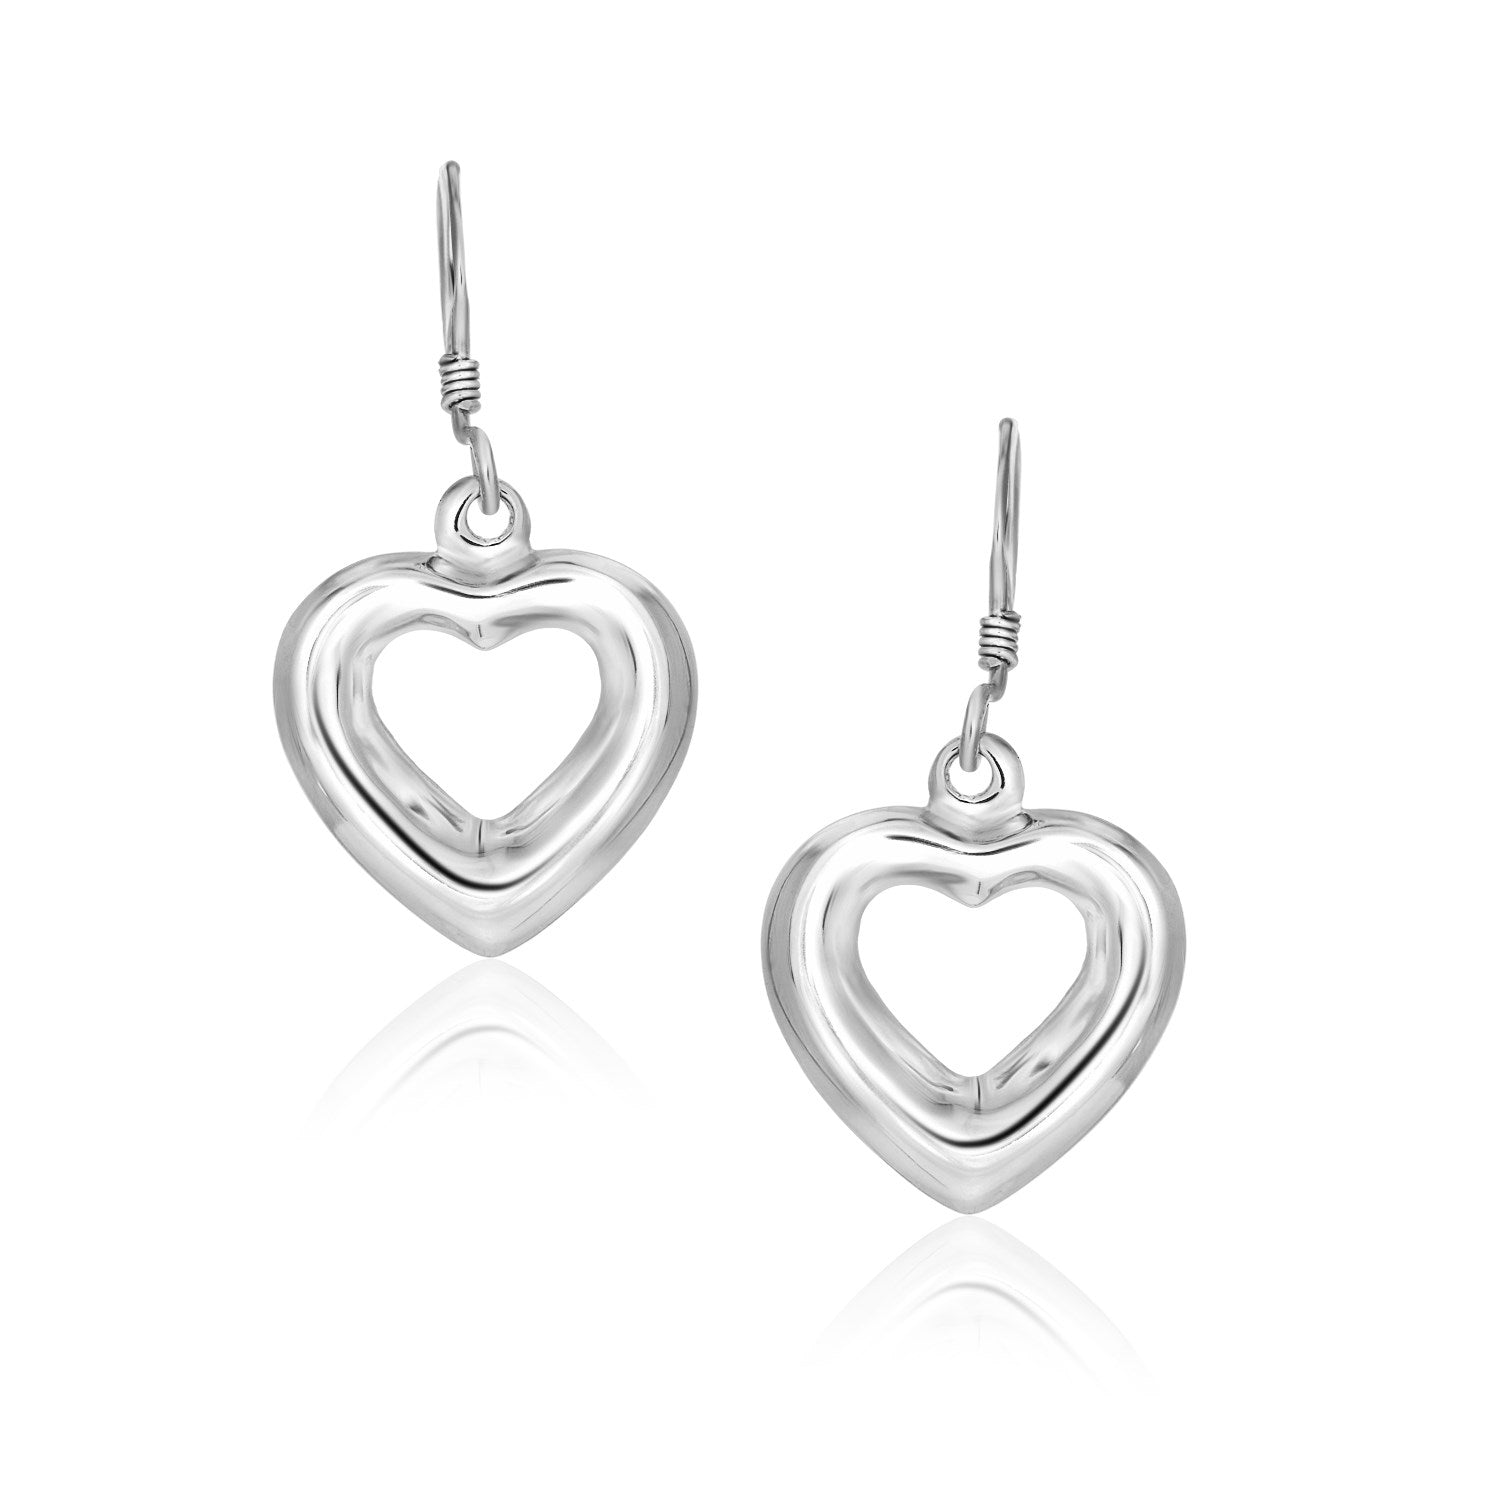 Unique Modern Paris Style Sterling Silver Drop Earrings with a Puffed Open Heart Design